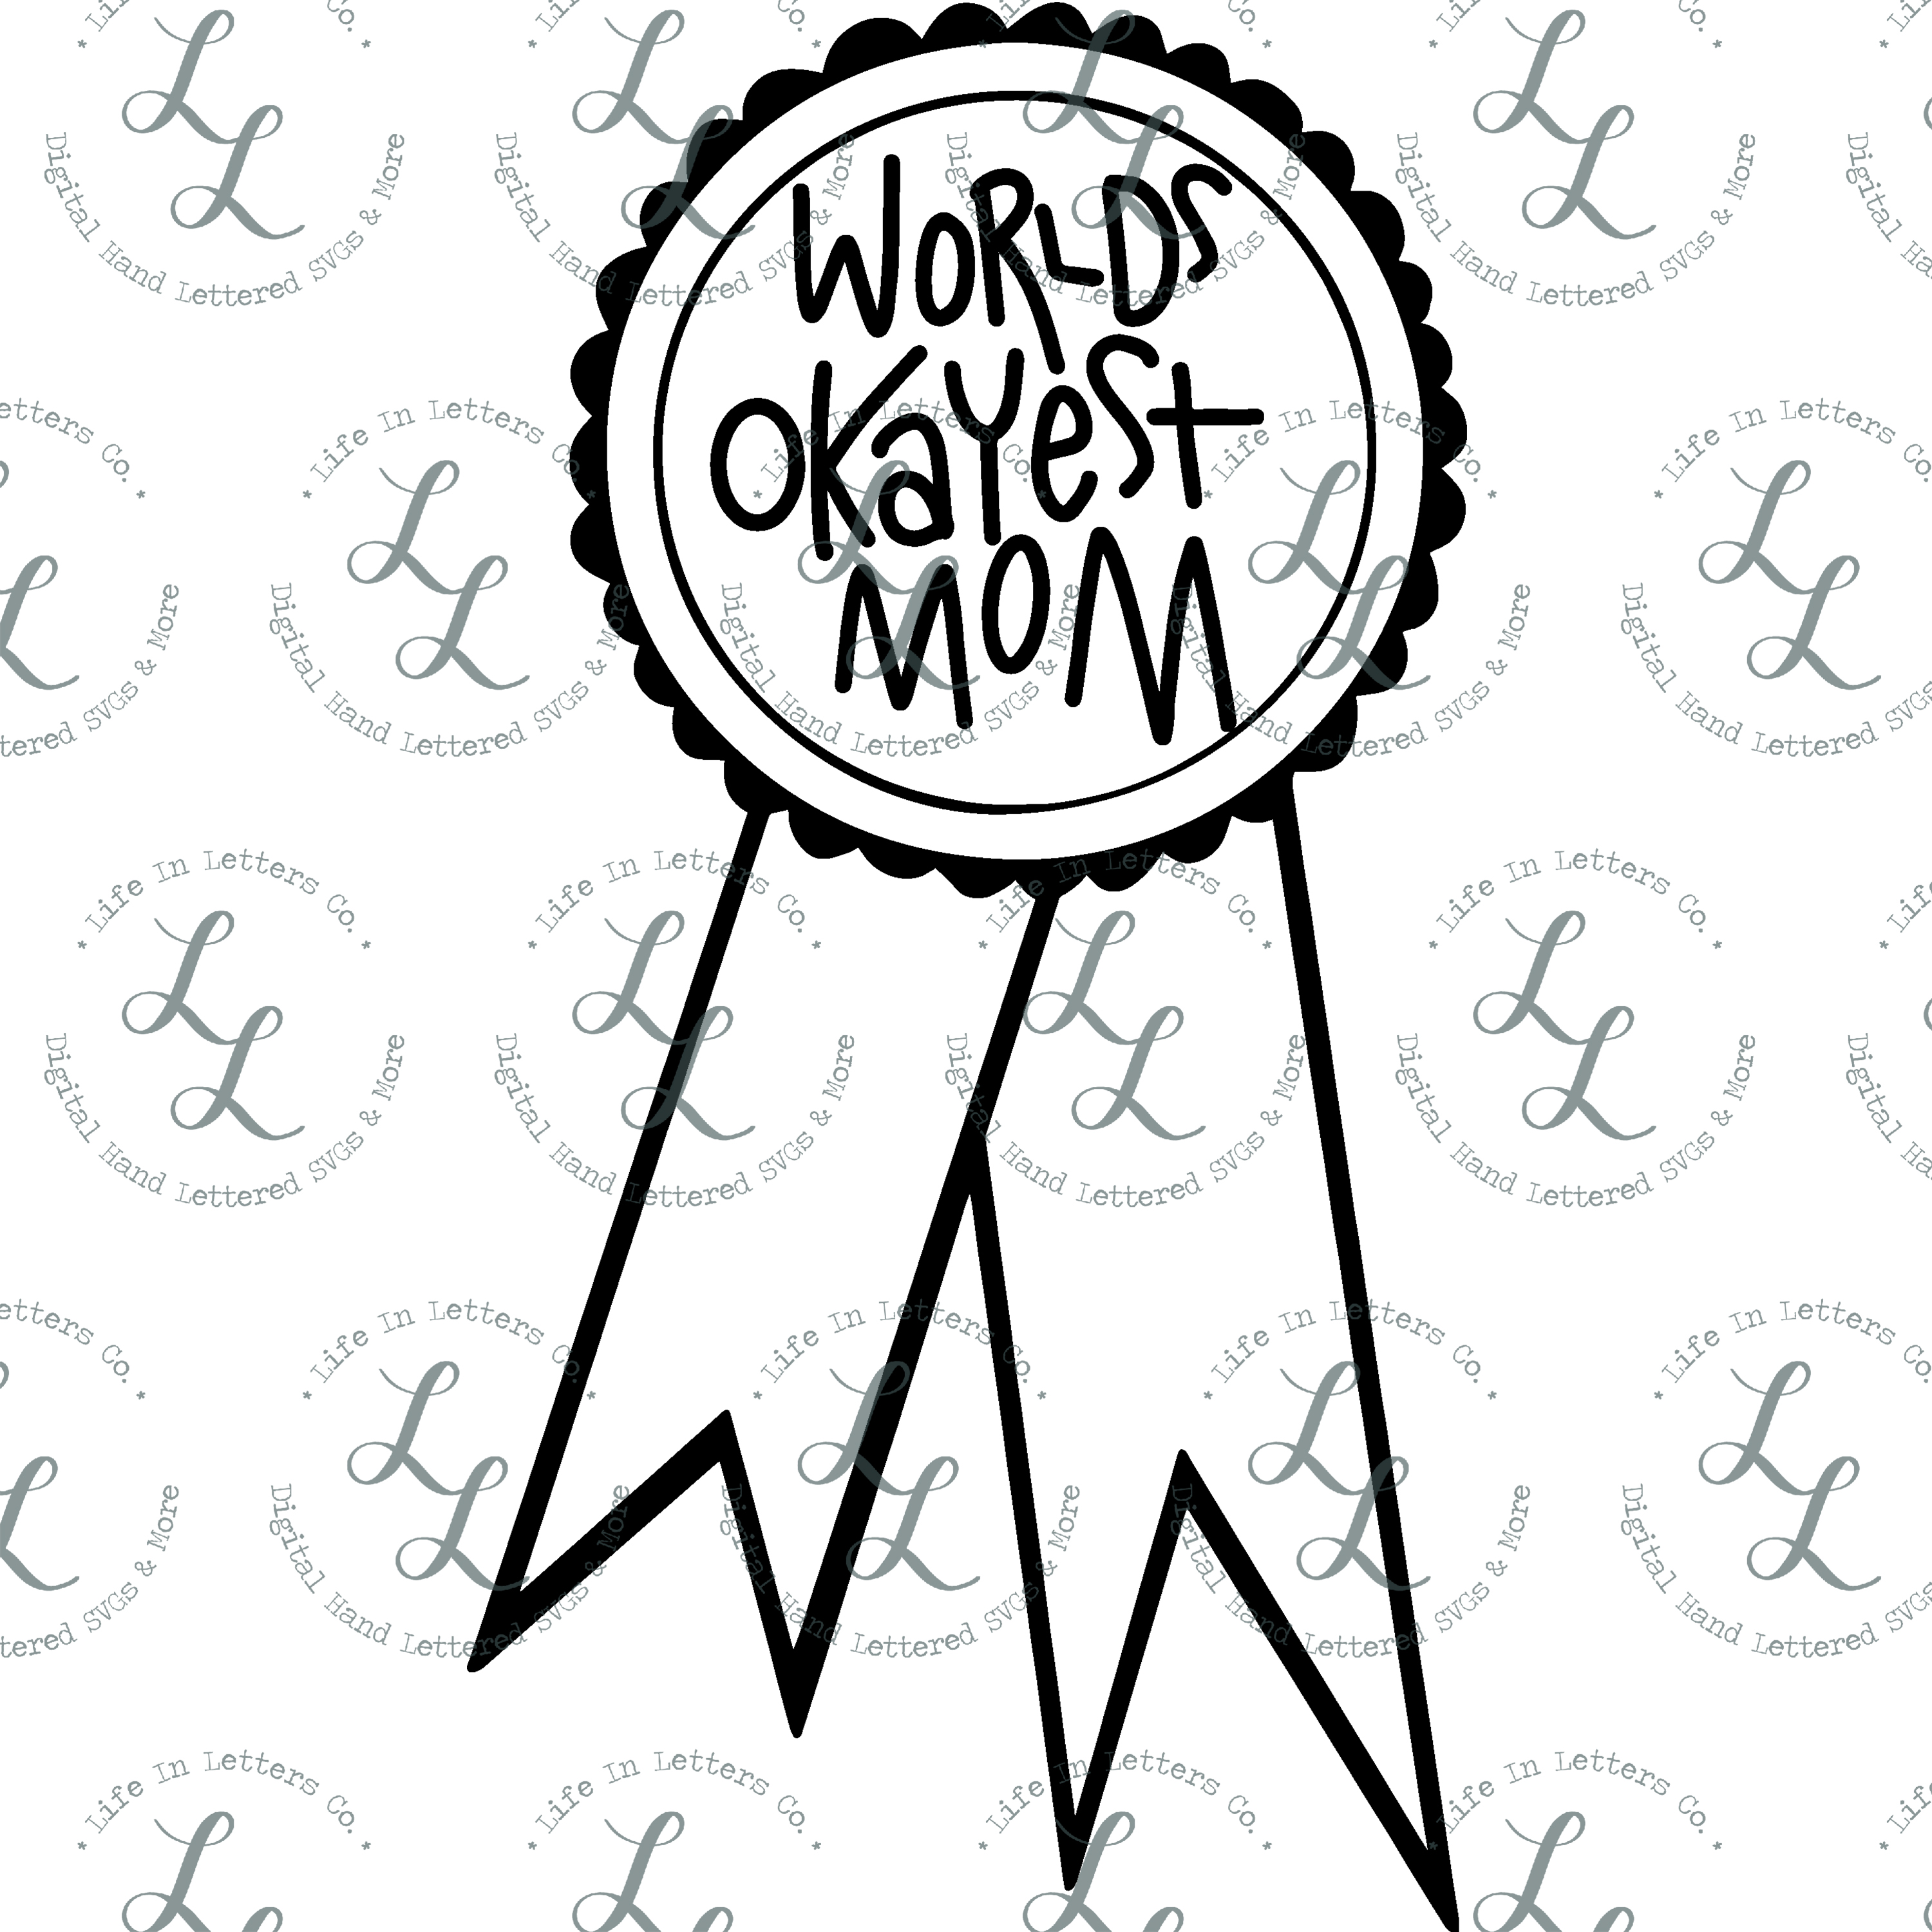 World's Okayest Mom Ribbon- Cut File, SVG, PNG, EPS, DXF example image 2